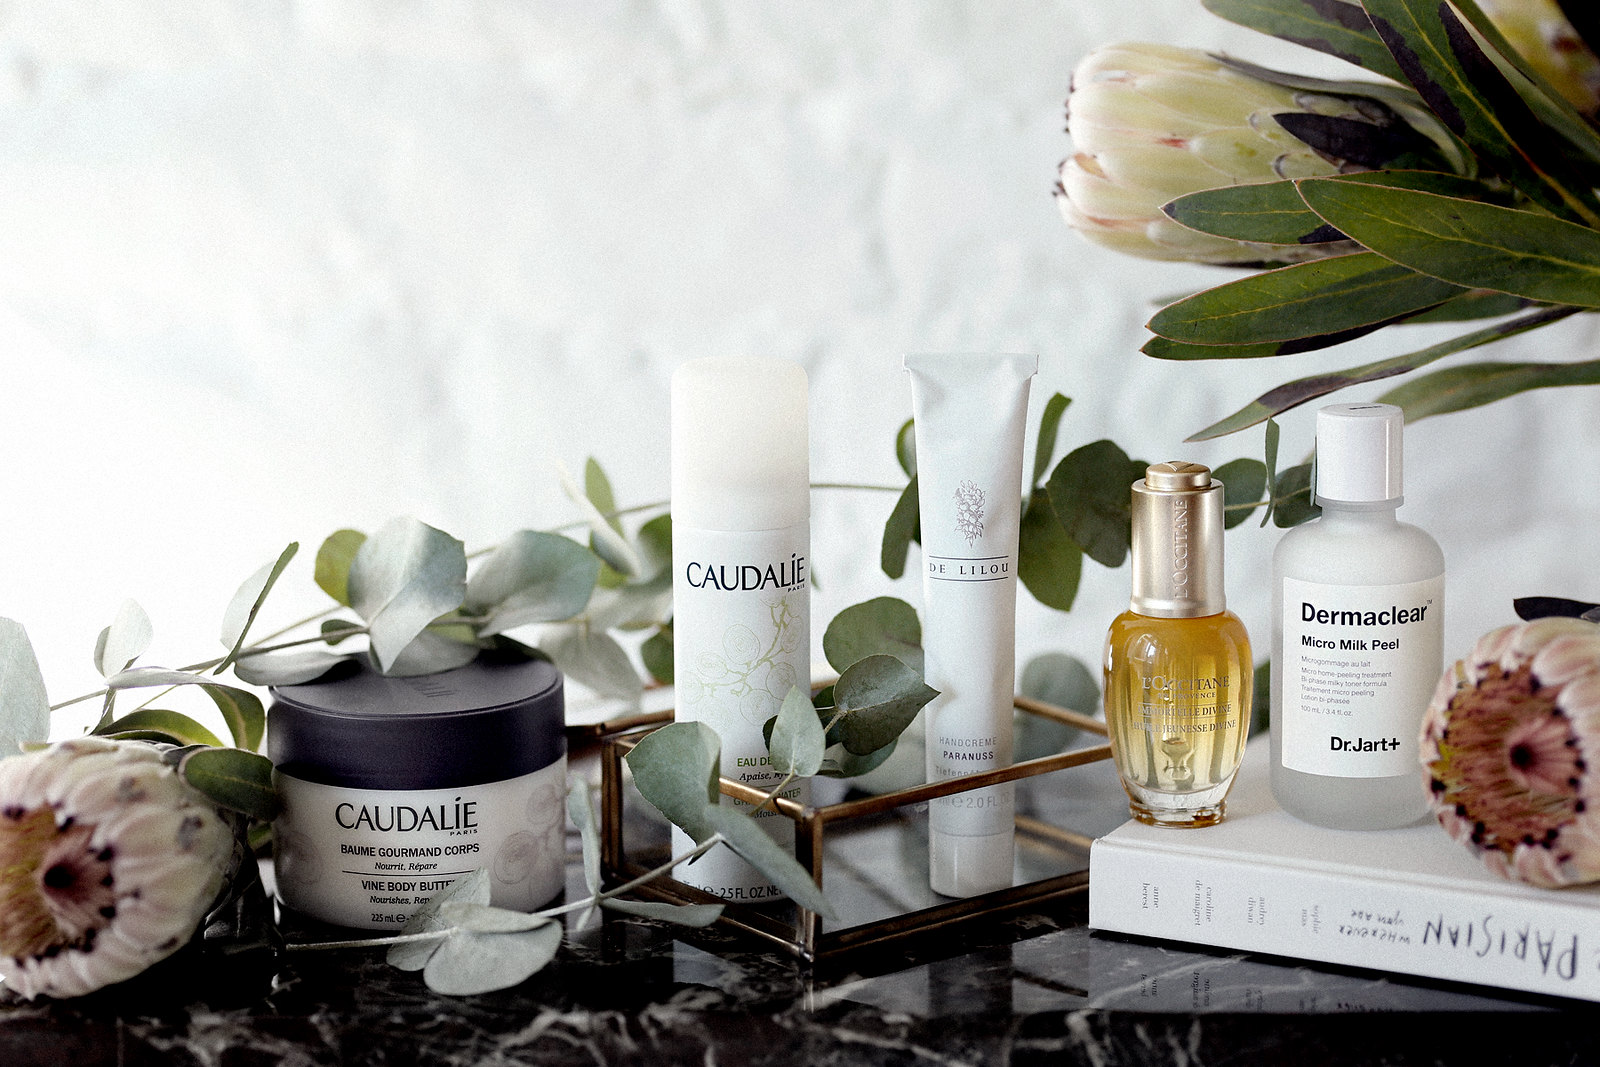 beauty favourites october caudalie de lilou l'occitane dr. jart+ dermaclear skincare pflege favoriten beautyblogger beautybloggers details lieblinge cats & dogs beauty blog düsseldorf germany photographer minimal minimalism girly ricarda schernus 6